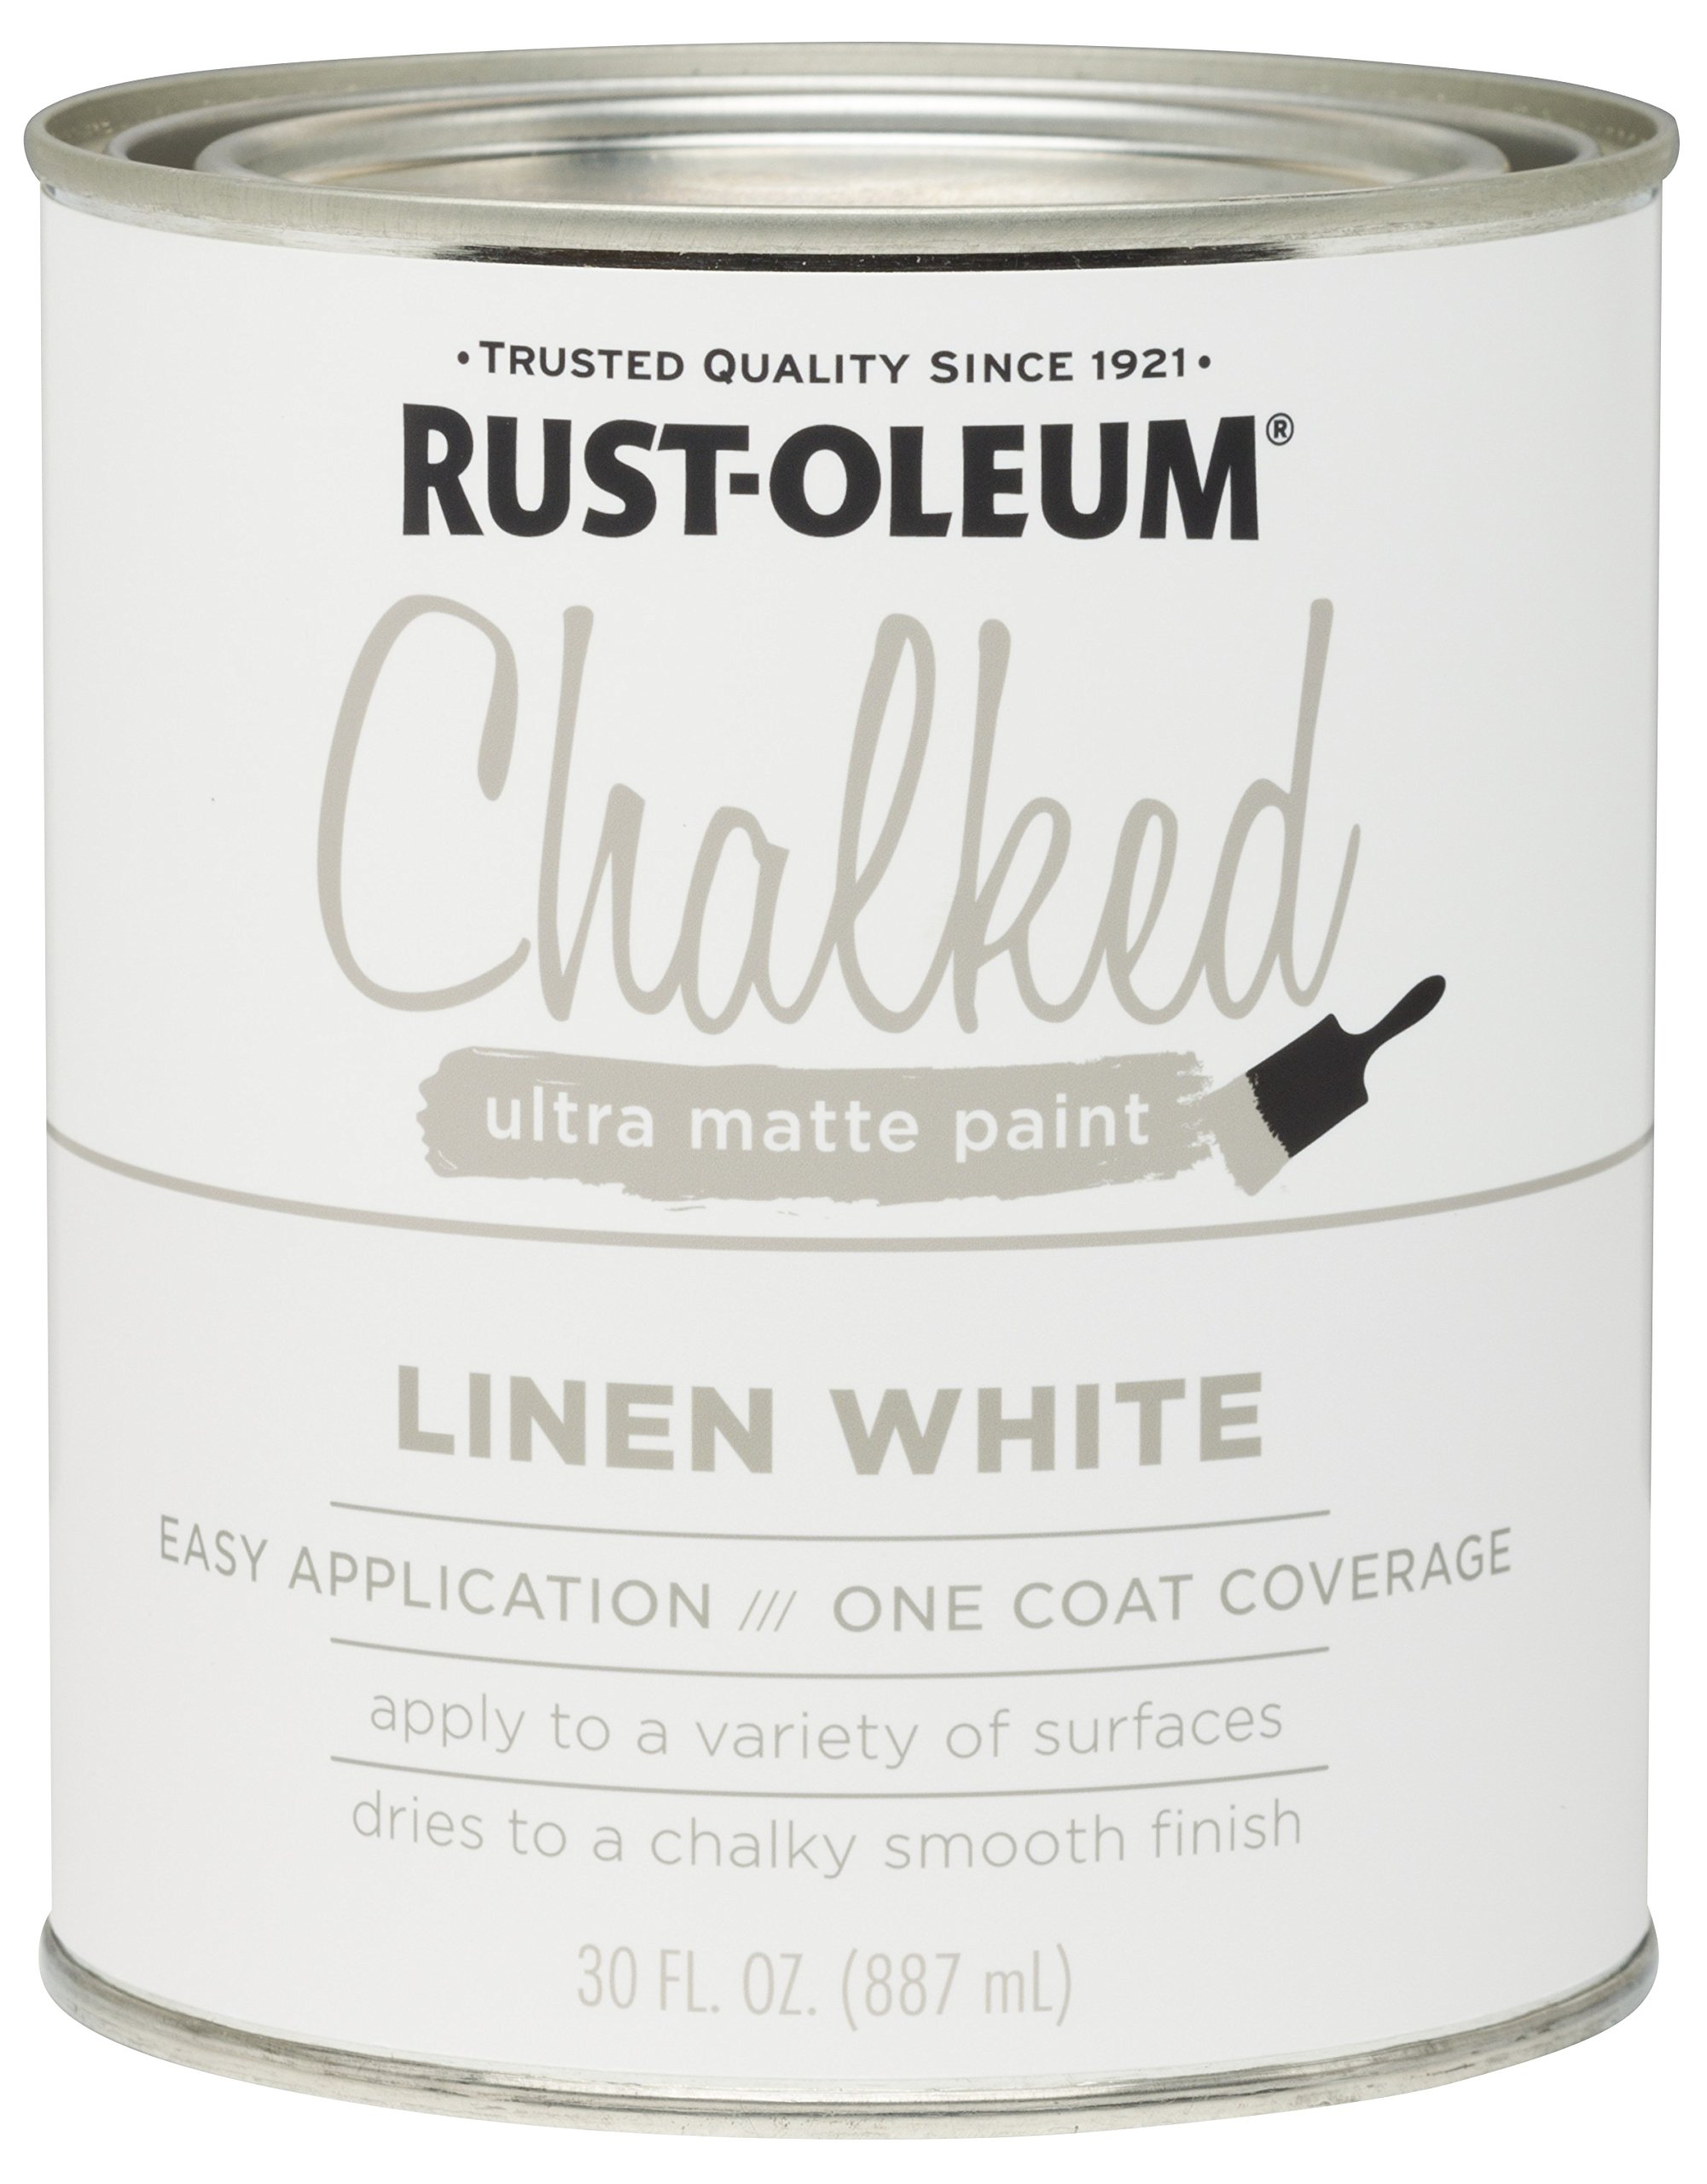 Rust Oleum 285140 Ultra Interior Chalked